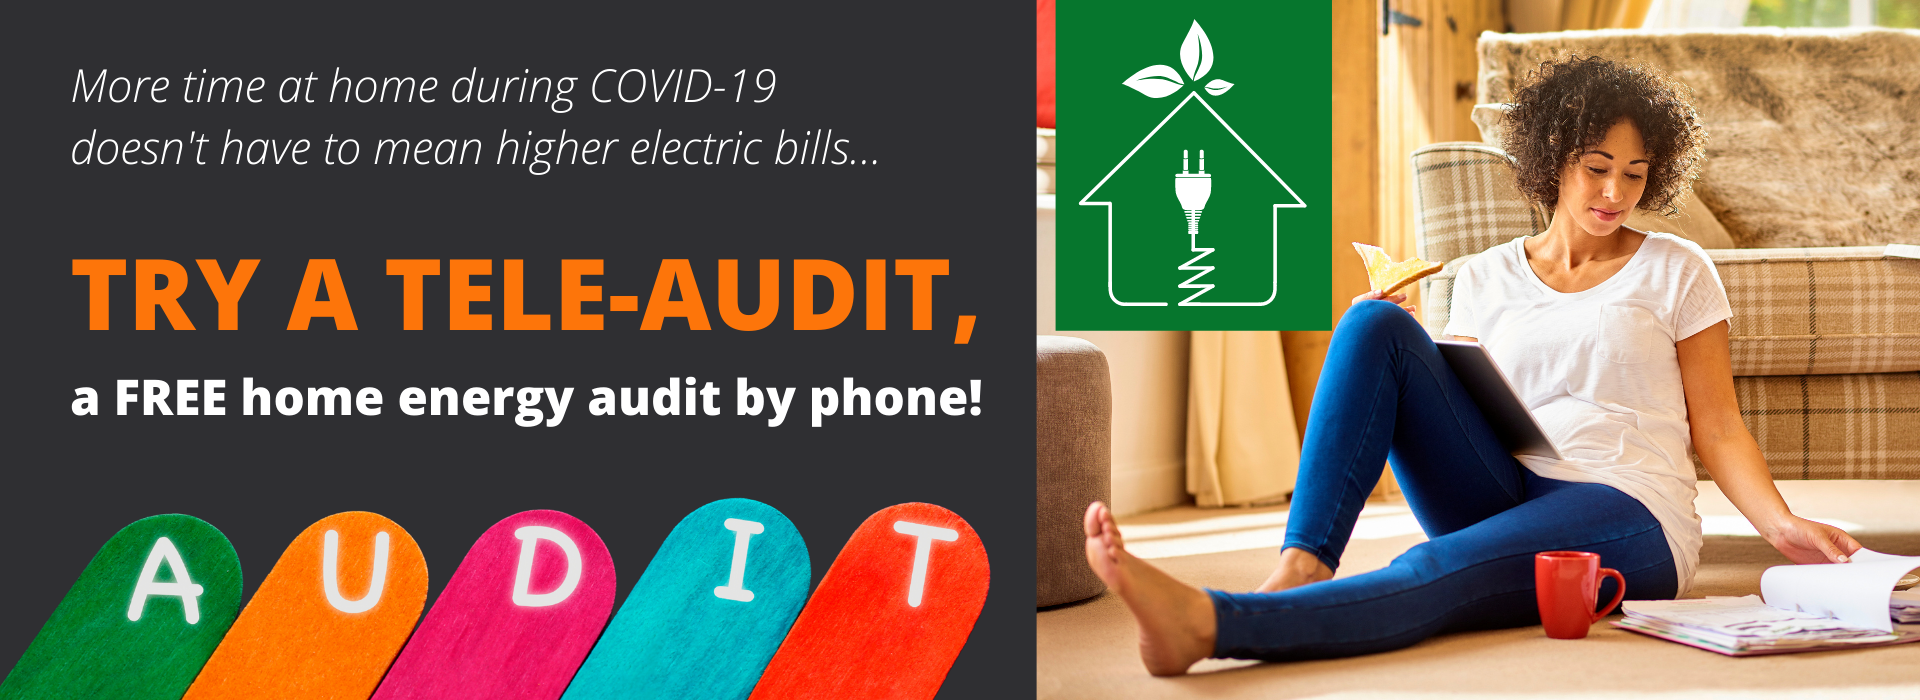 Schedule a tele-audit to see your home's energy use and how you can sav money